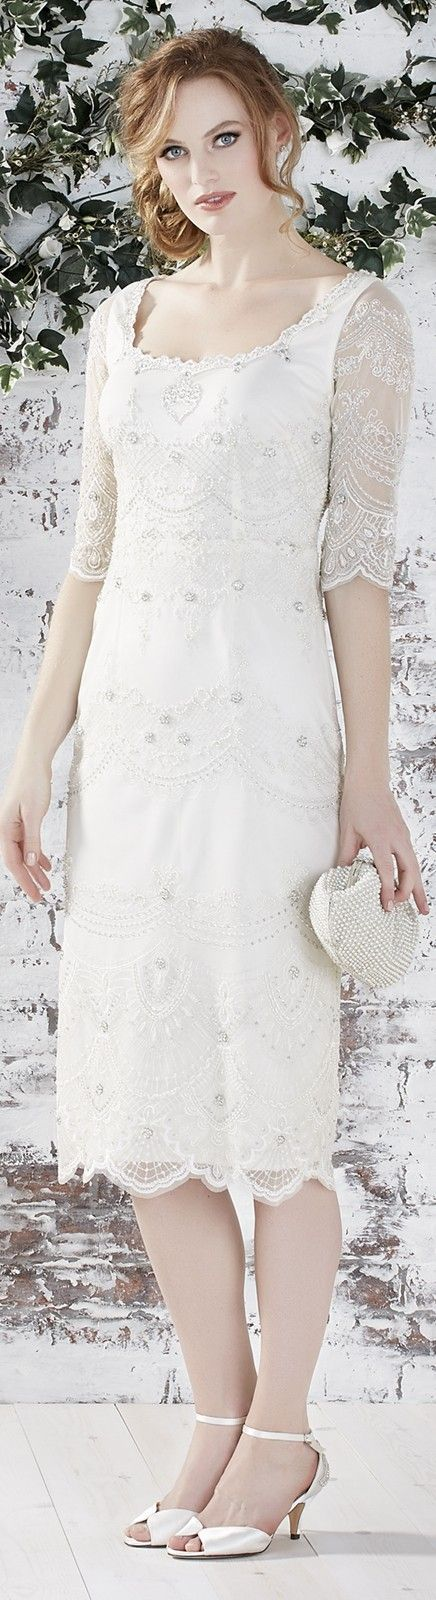 Wedding dress ideas for casual brides. Read article with